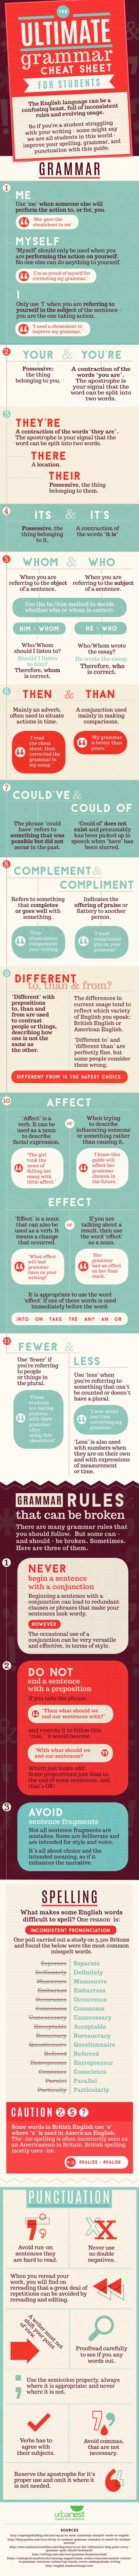 The ultimate English grammar cheat sheet #infographic